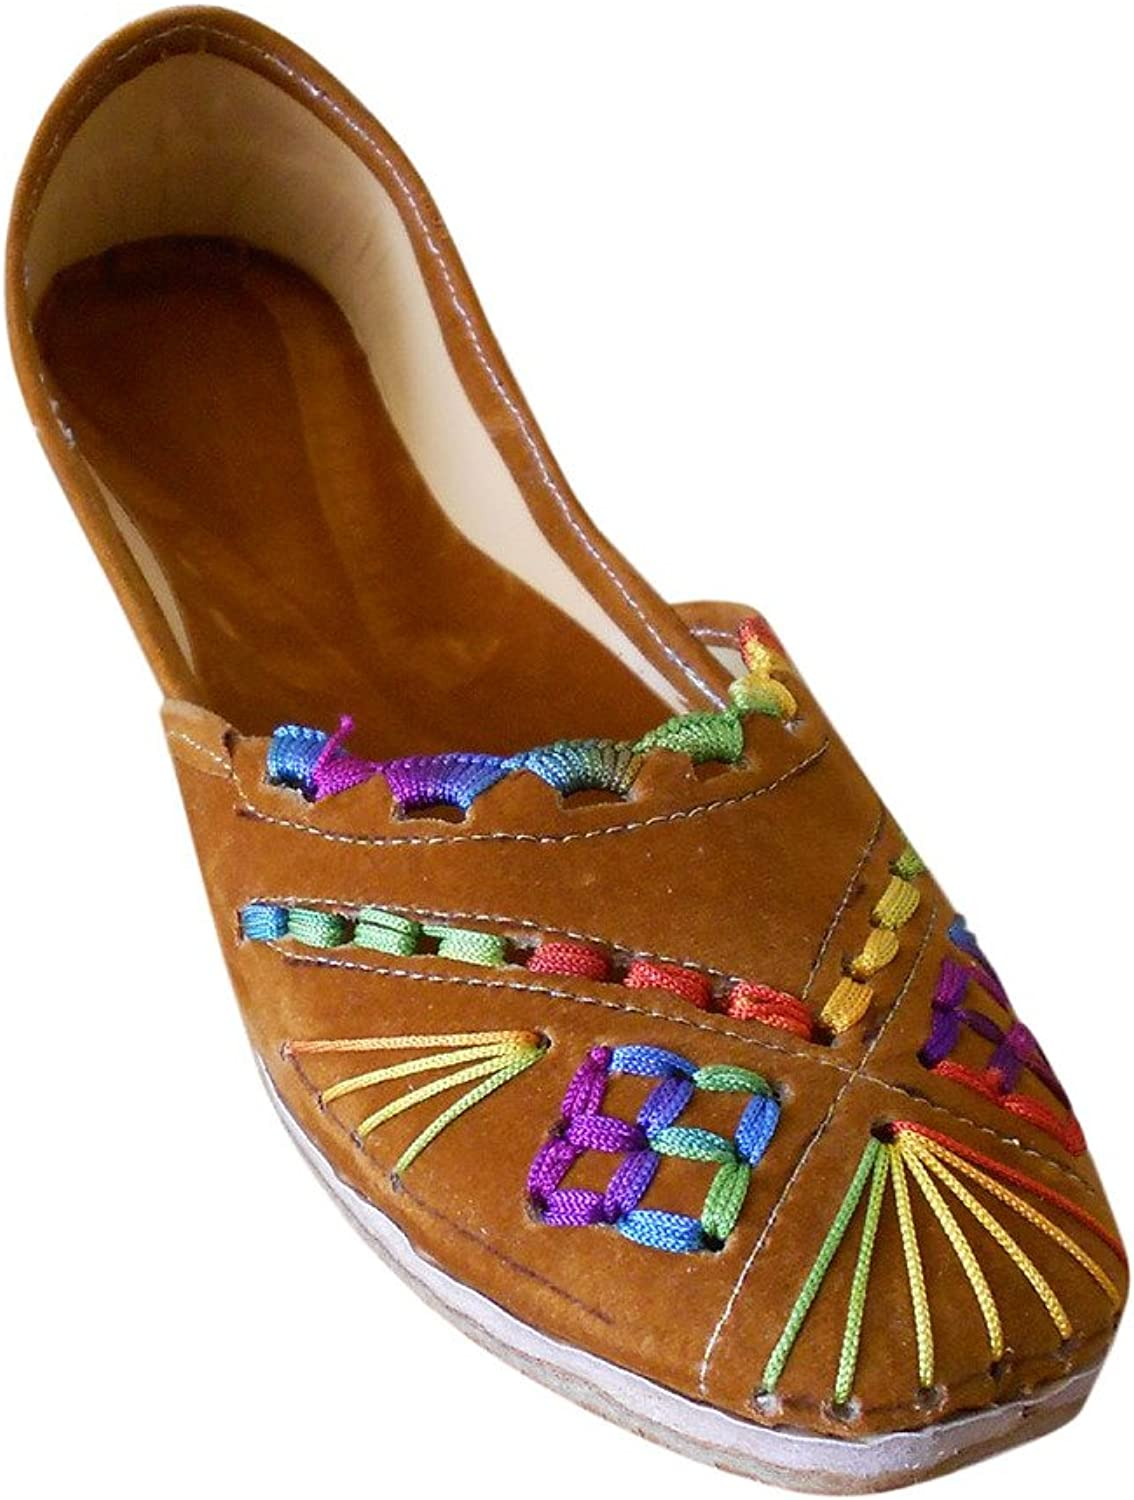 Kalra Creations Jutti Women's Traditional Indian Velvet with Embroidery Party shoes